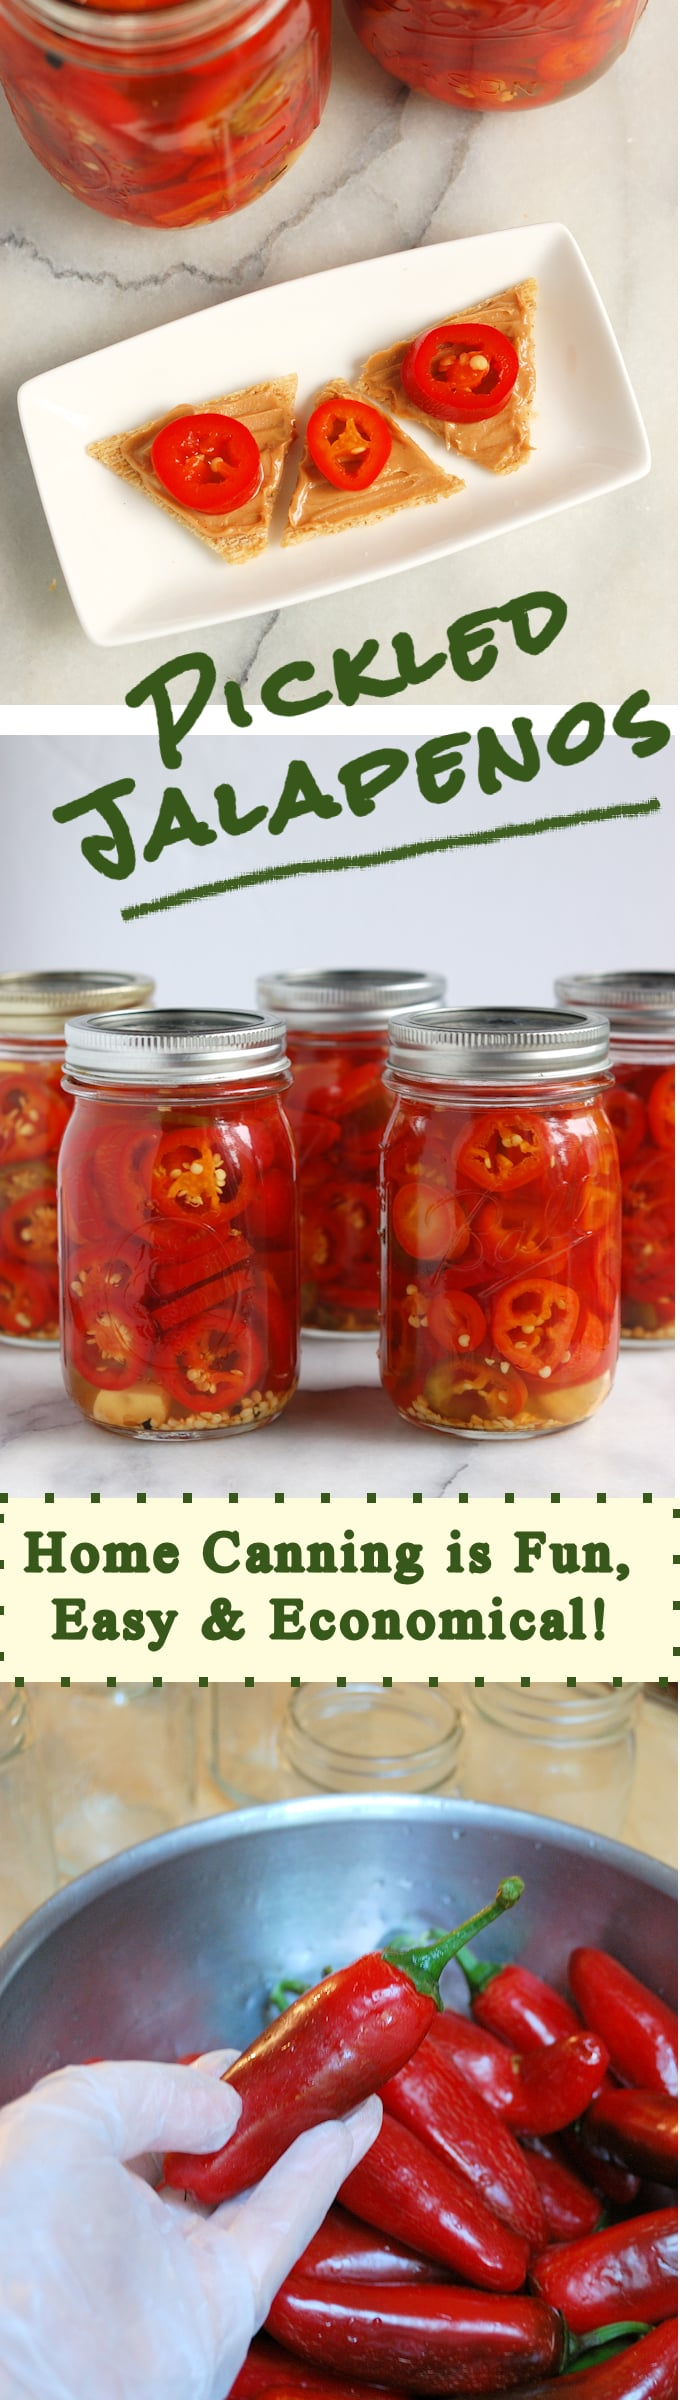 Save the taste of summer with home-canned Pickled Jalapeno peppers.